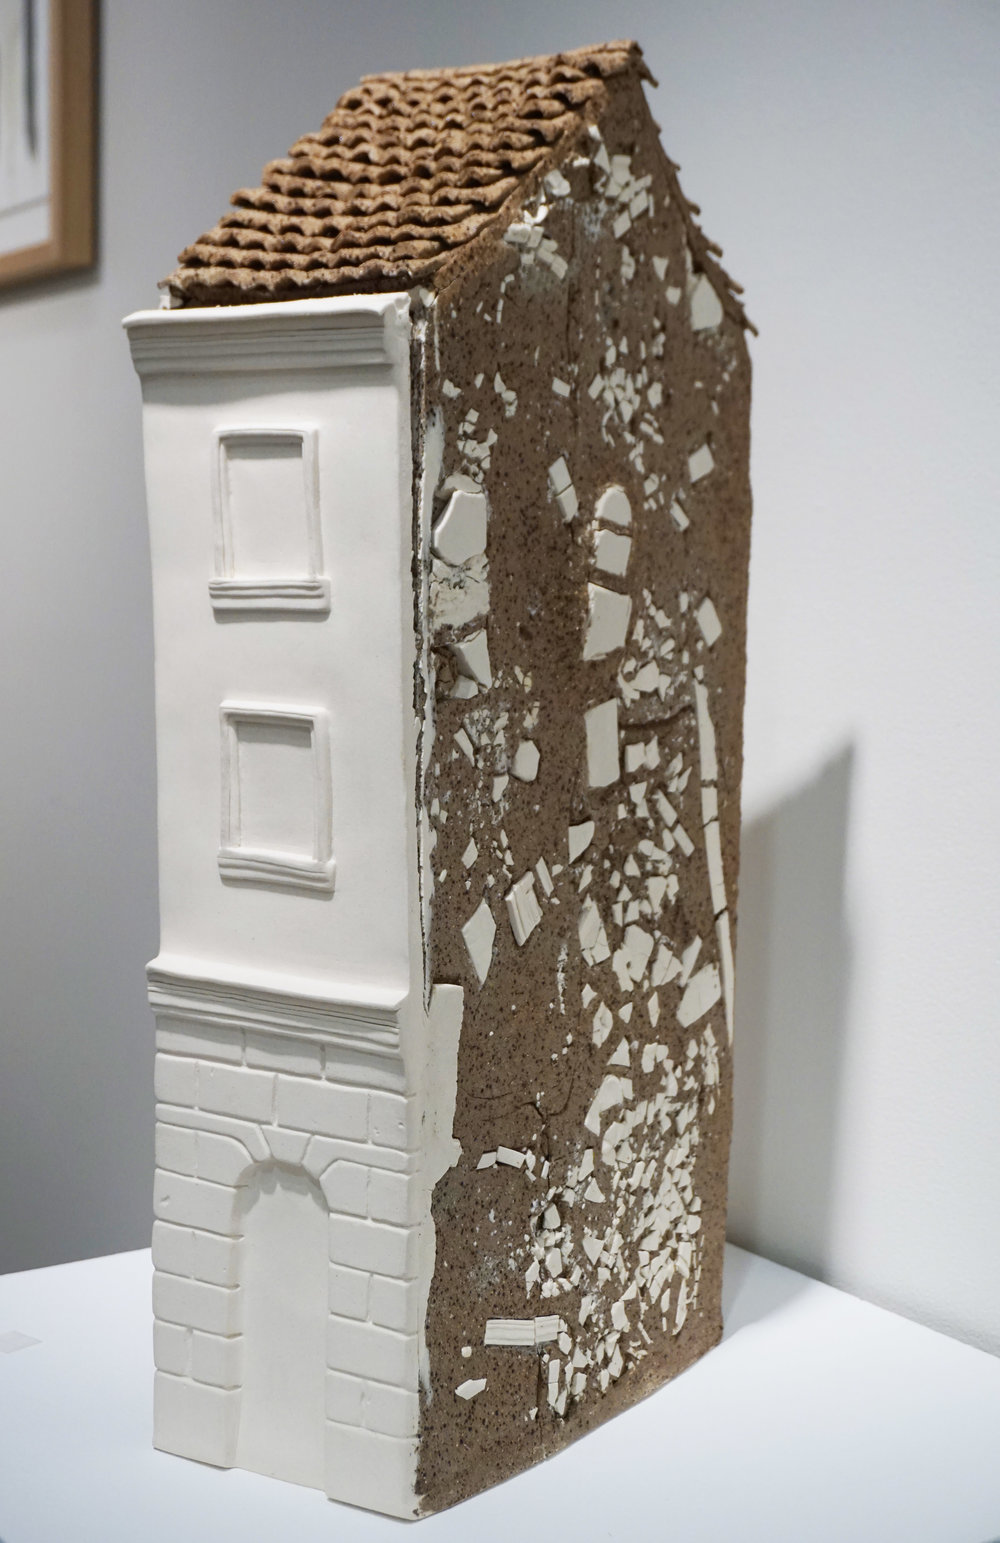 19. Emma Vinkovic, Old Town Relic, High-fired raku and stoneware clay $480